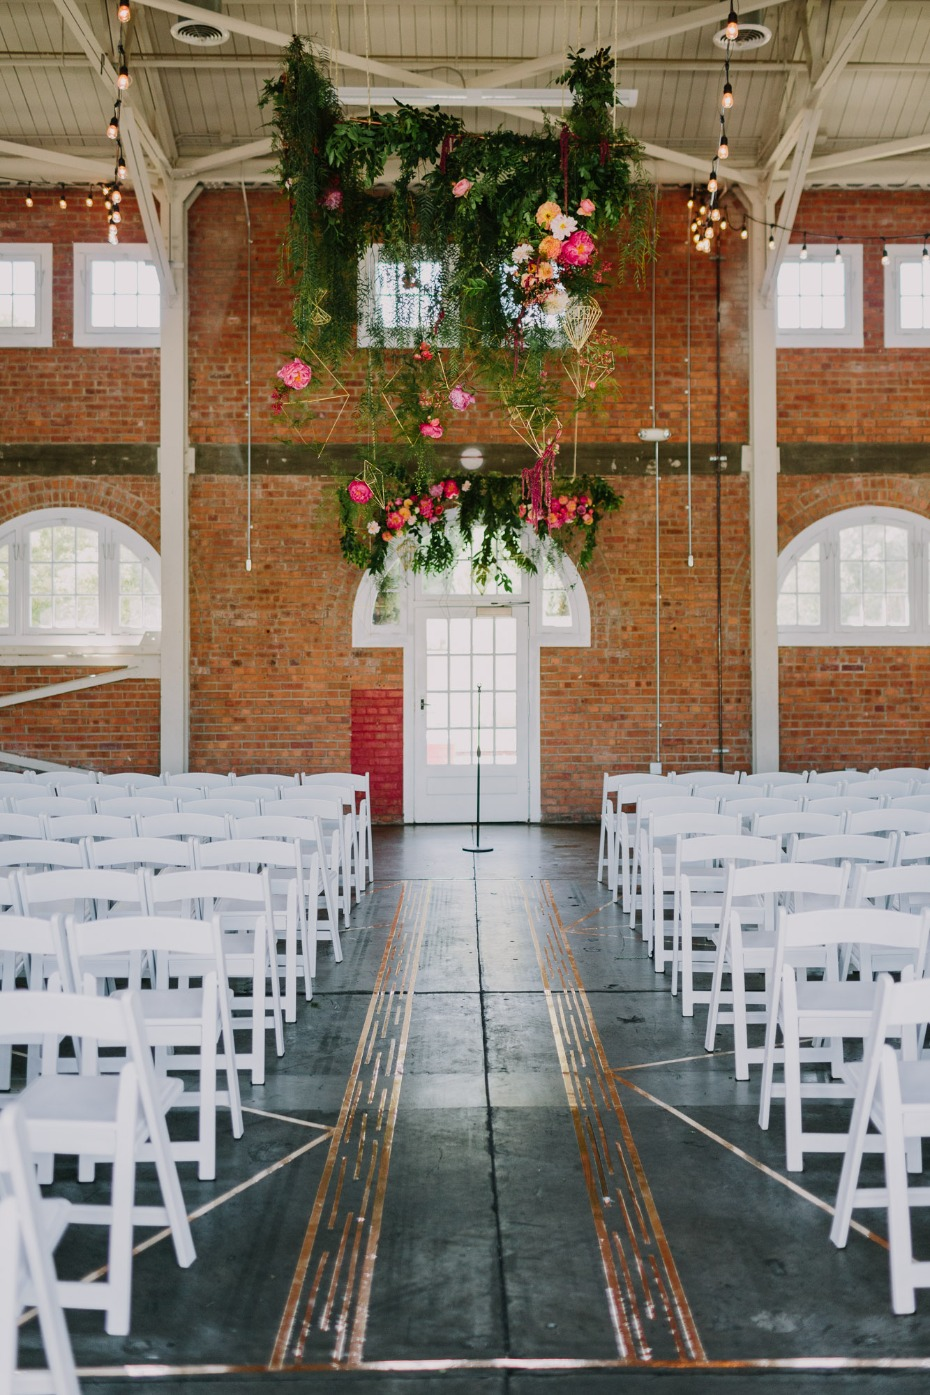 Open and airy ceremony space with greenery